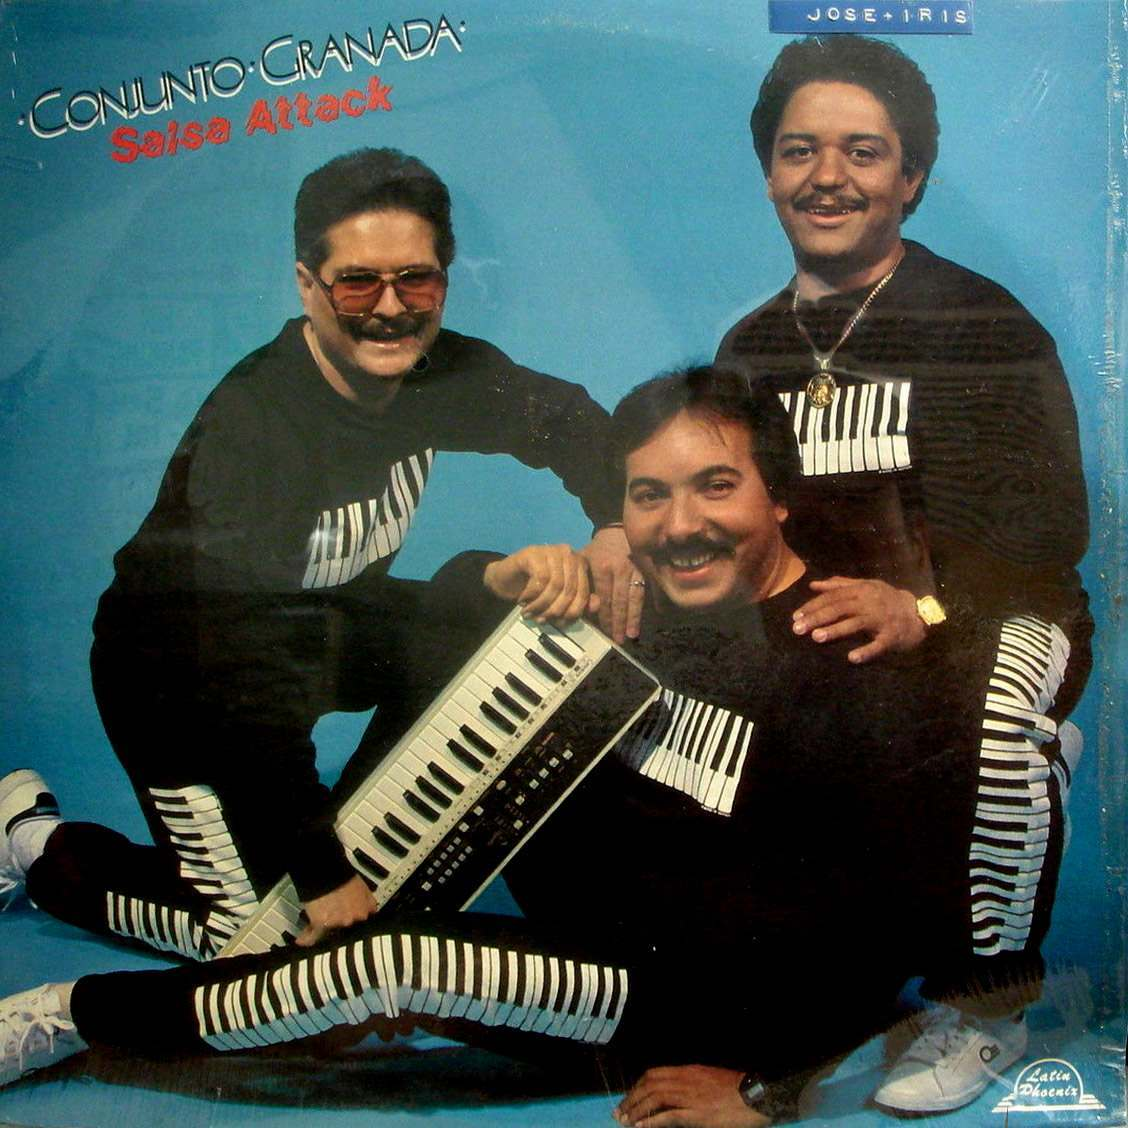 Tragic Matching Outfits on 1970s-80s Album Covers - Flashbak